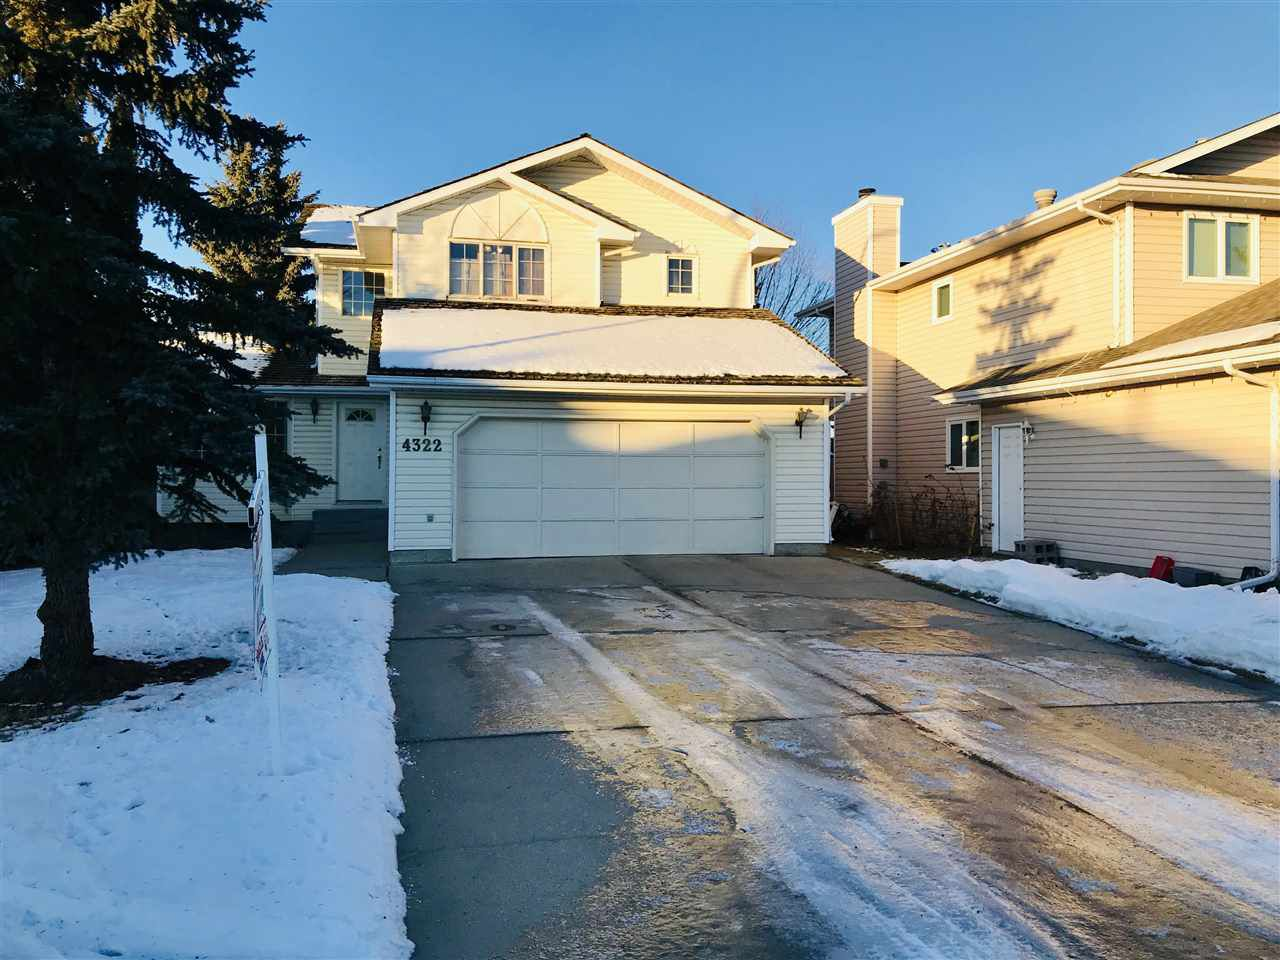 Main Photo: 4322 47 Street in Edmonton: Zone 29 House for sale : MLS®# E4148733